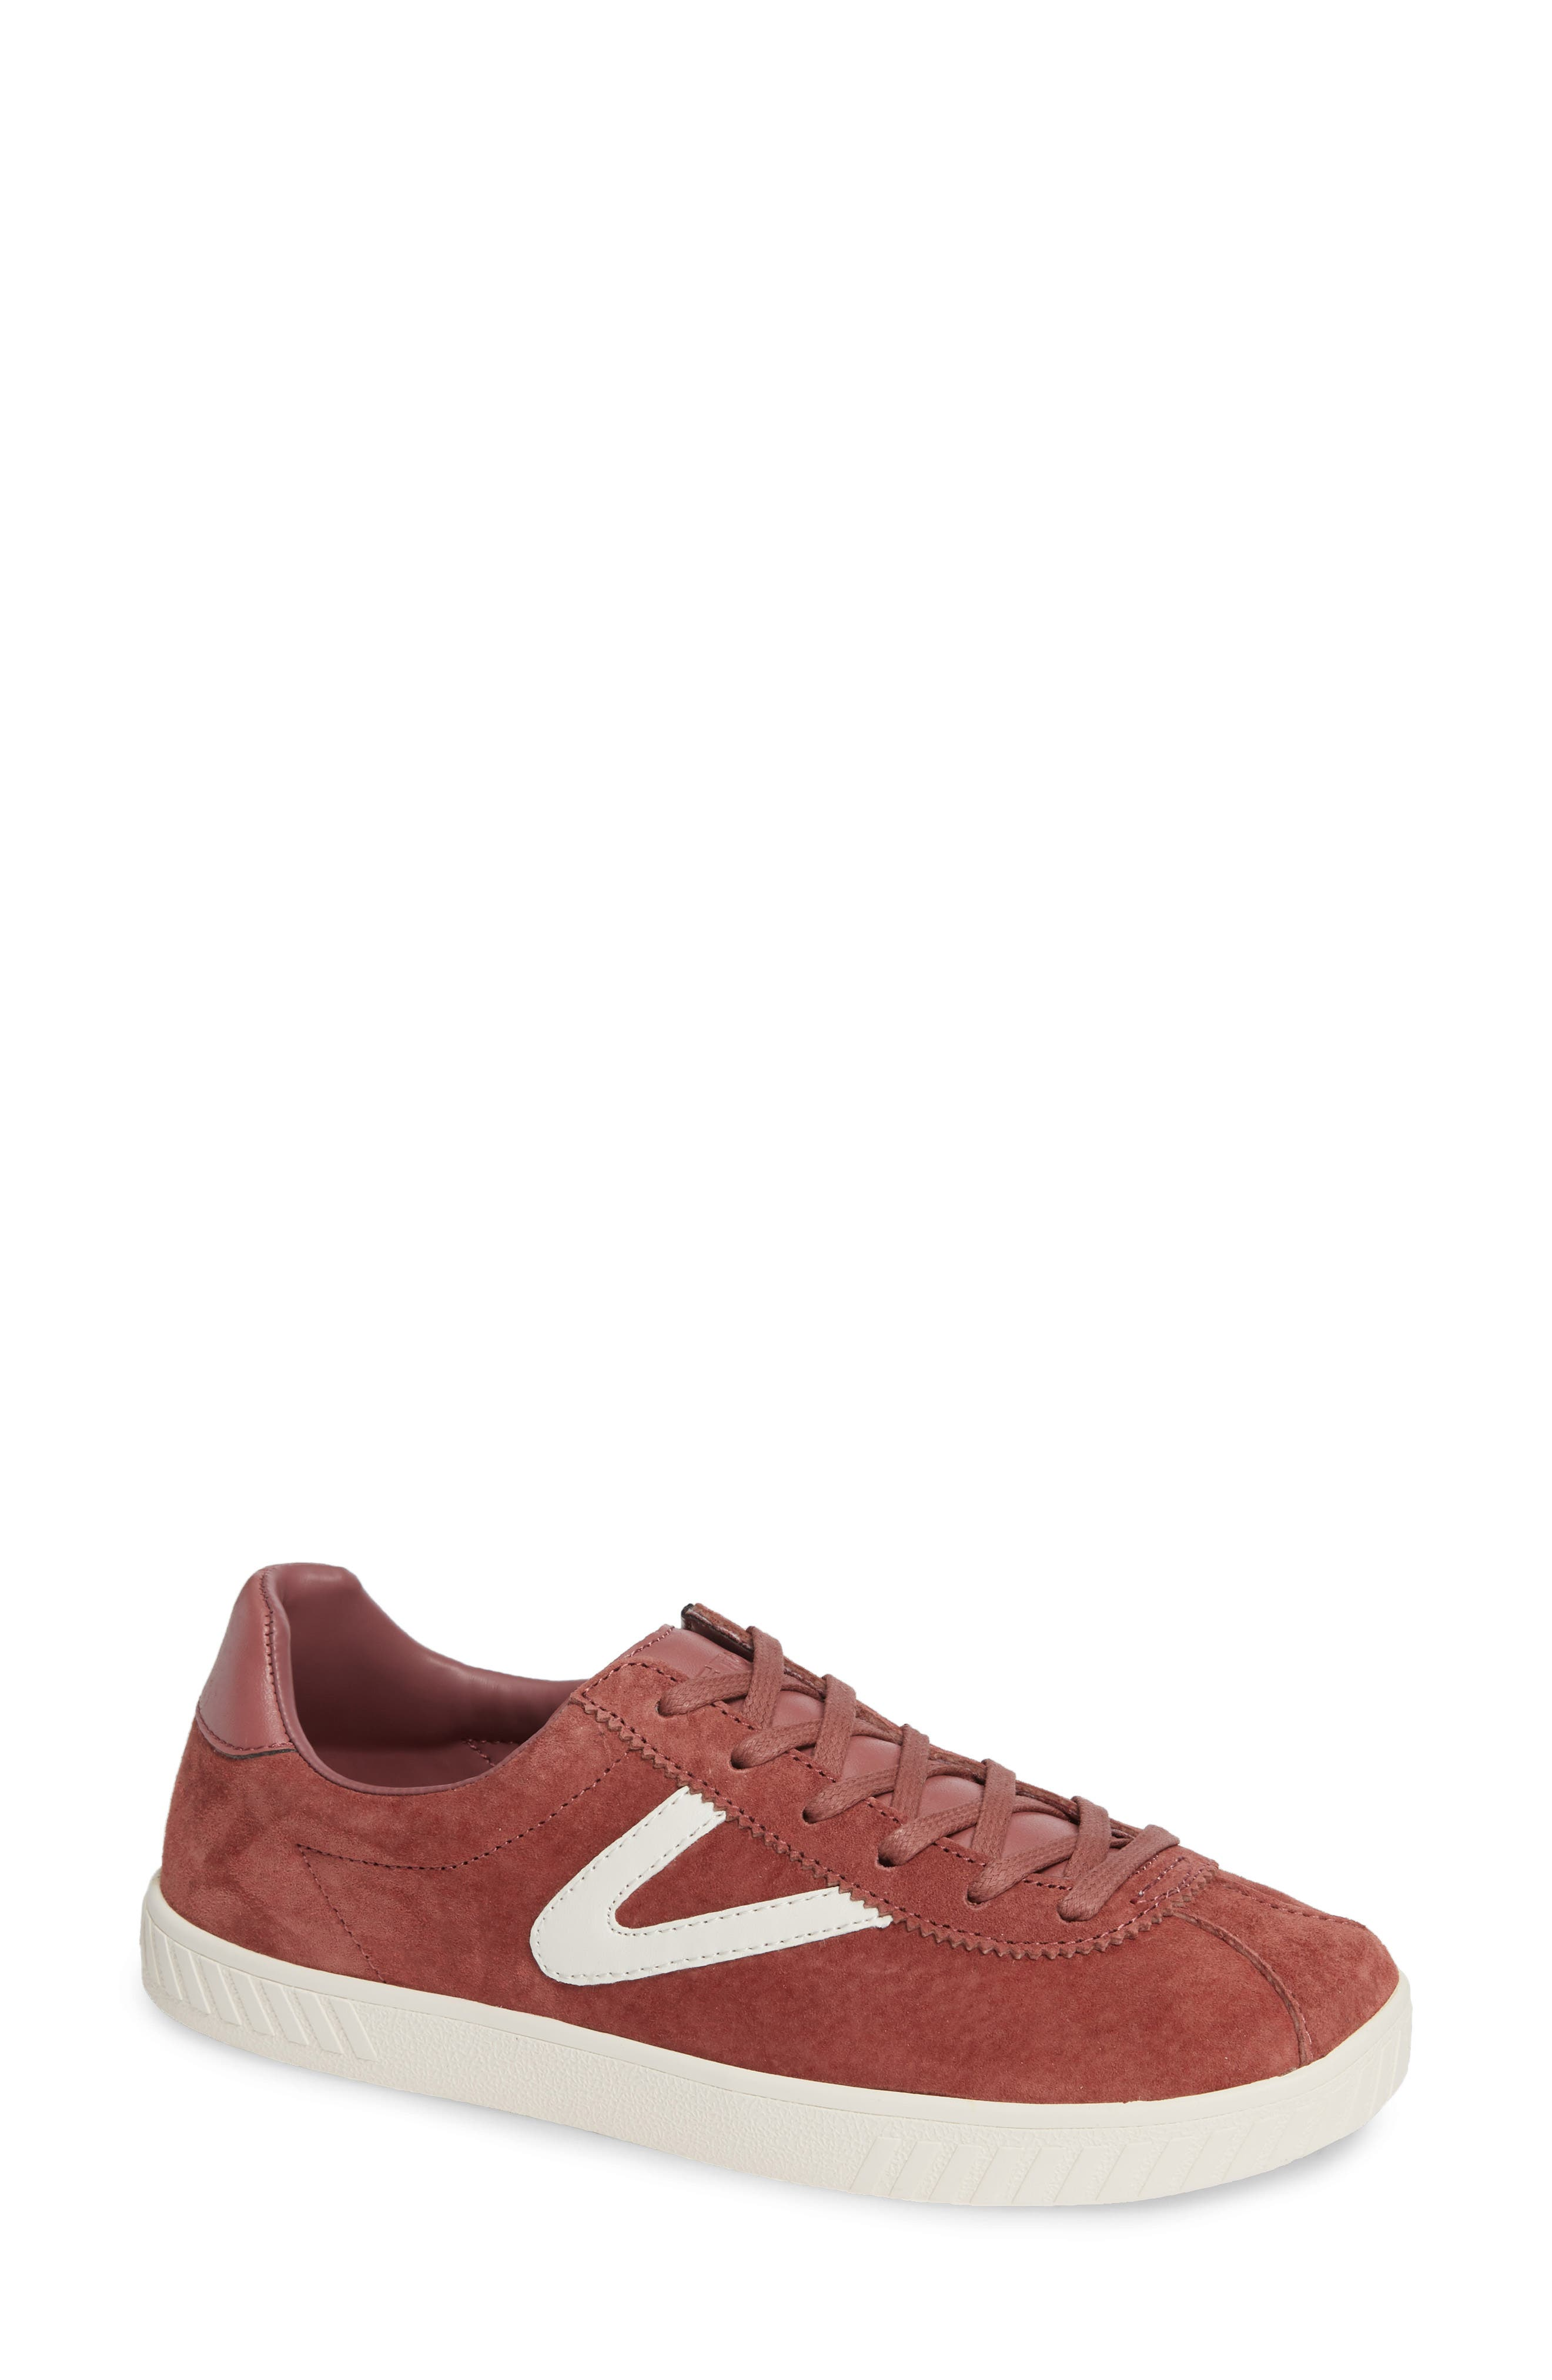 'Camden 3' Sneaker,                         Main,                         color, DUSTY ROSE/ VINTAGE WHITE